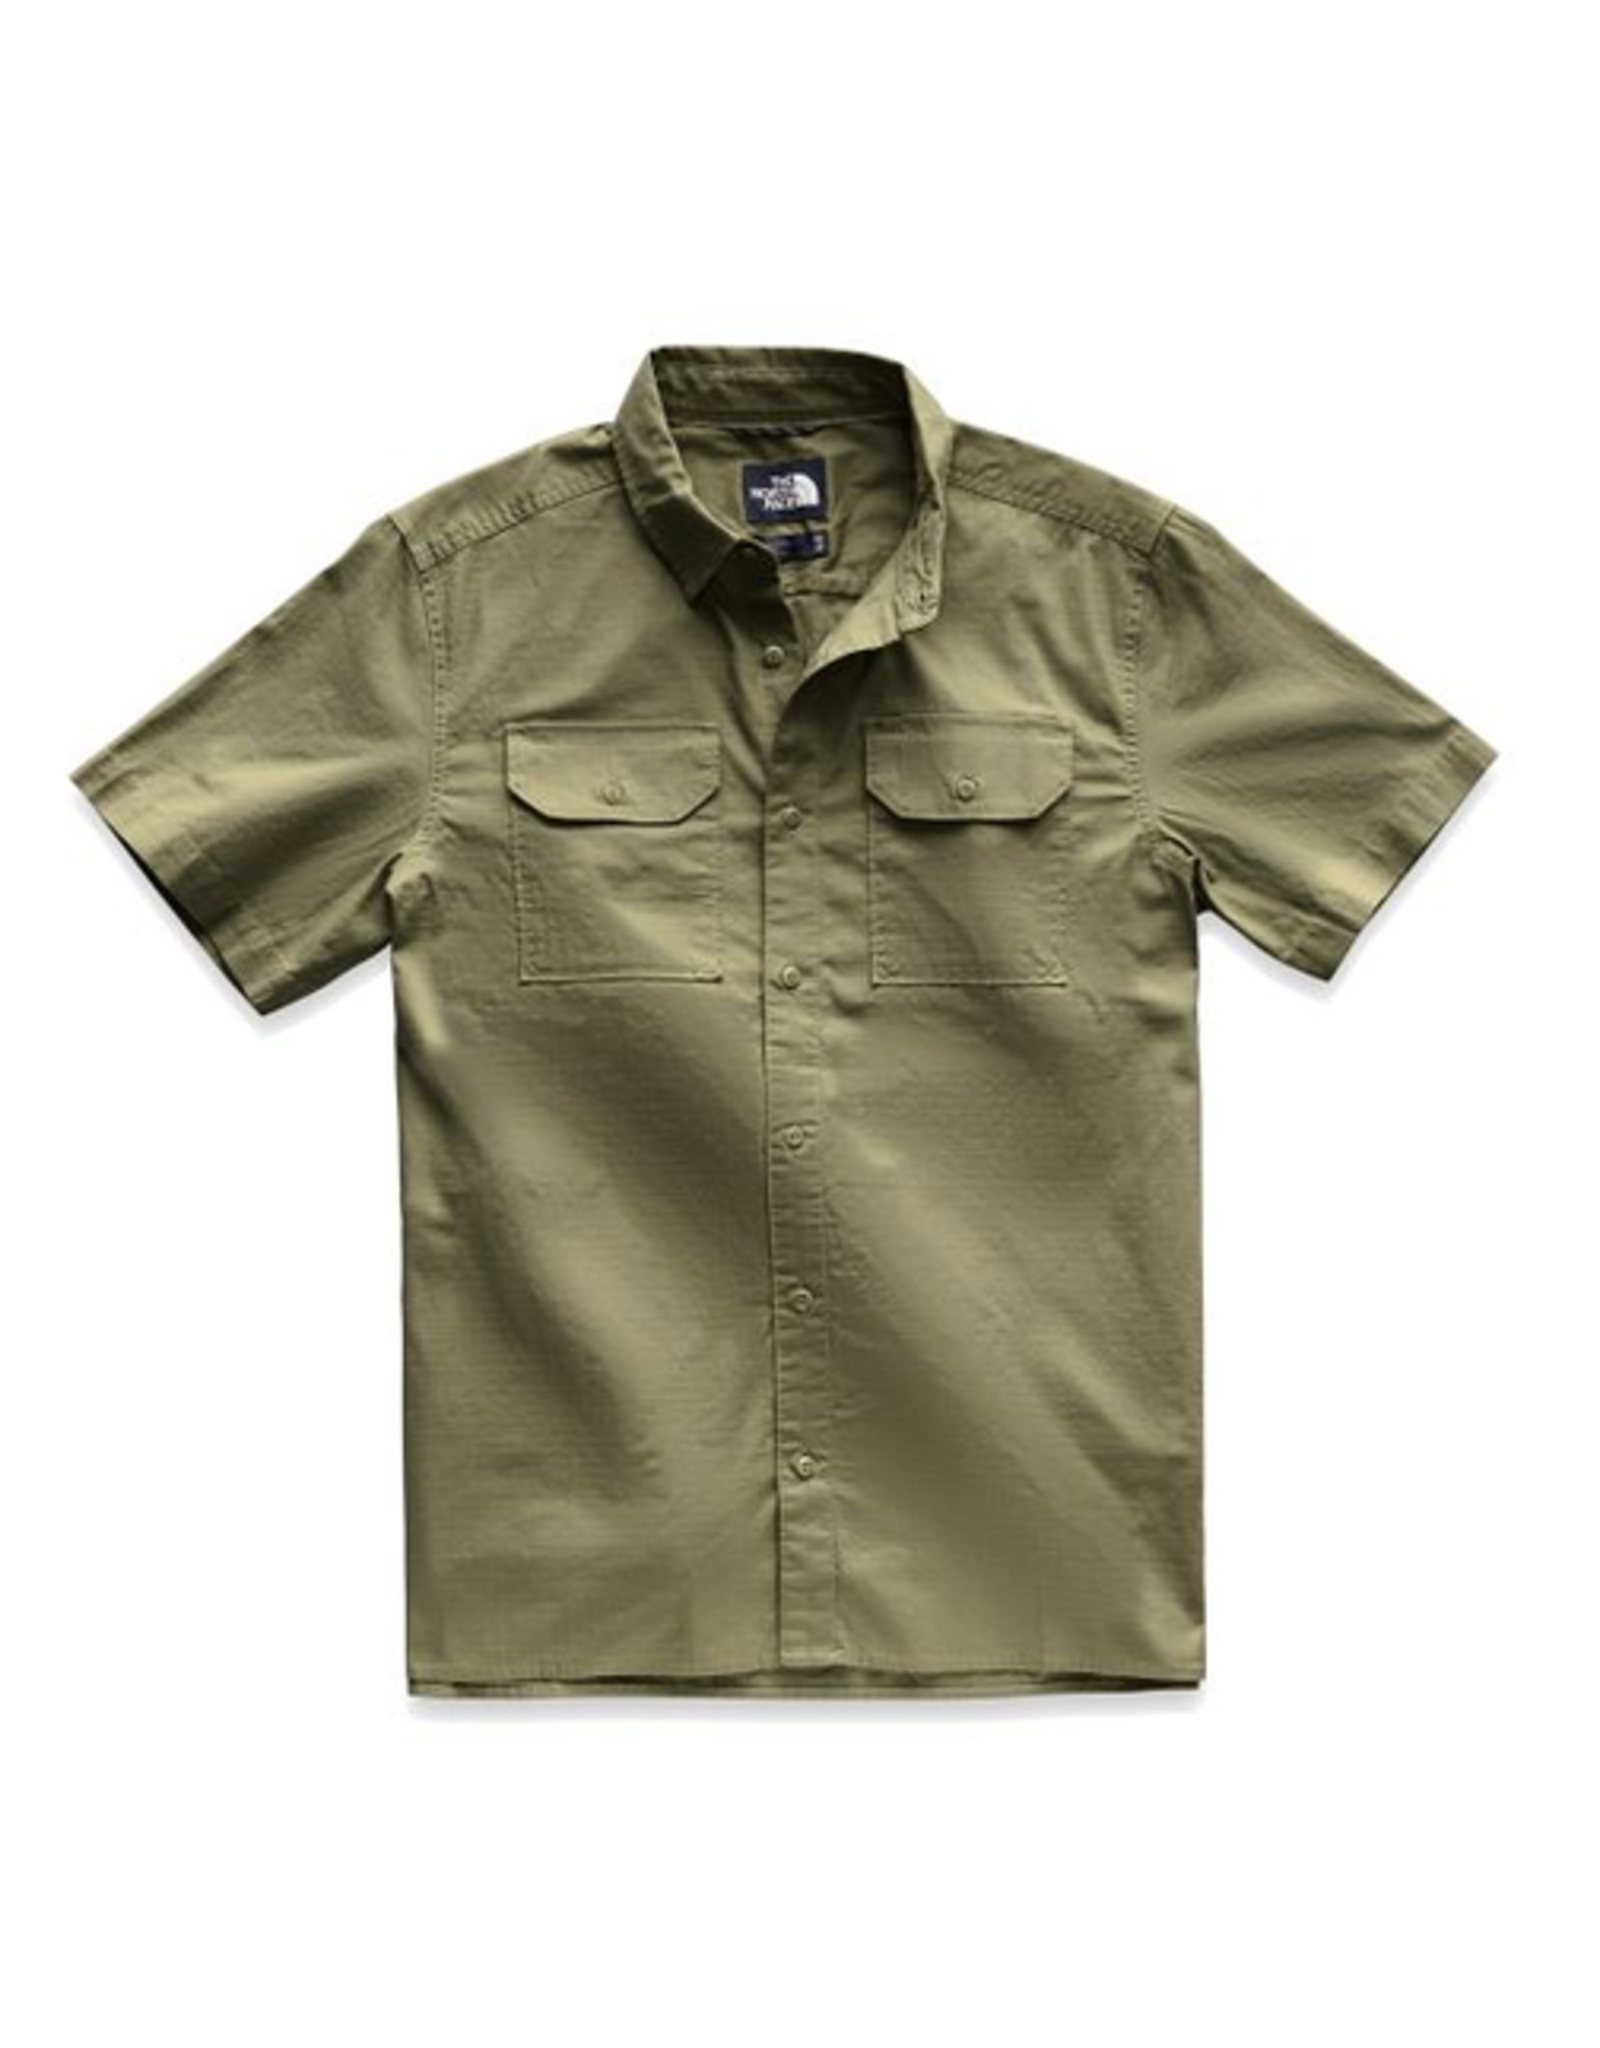 North Face North Face Men's Short Sleeve Battlement Shirt